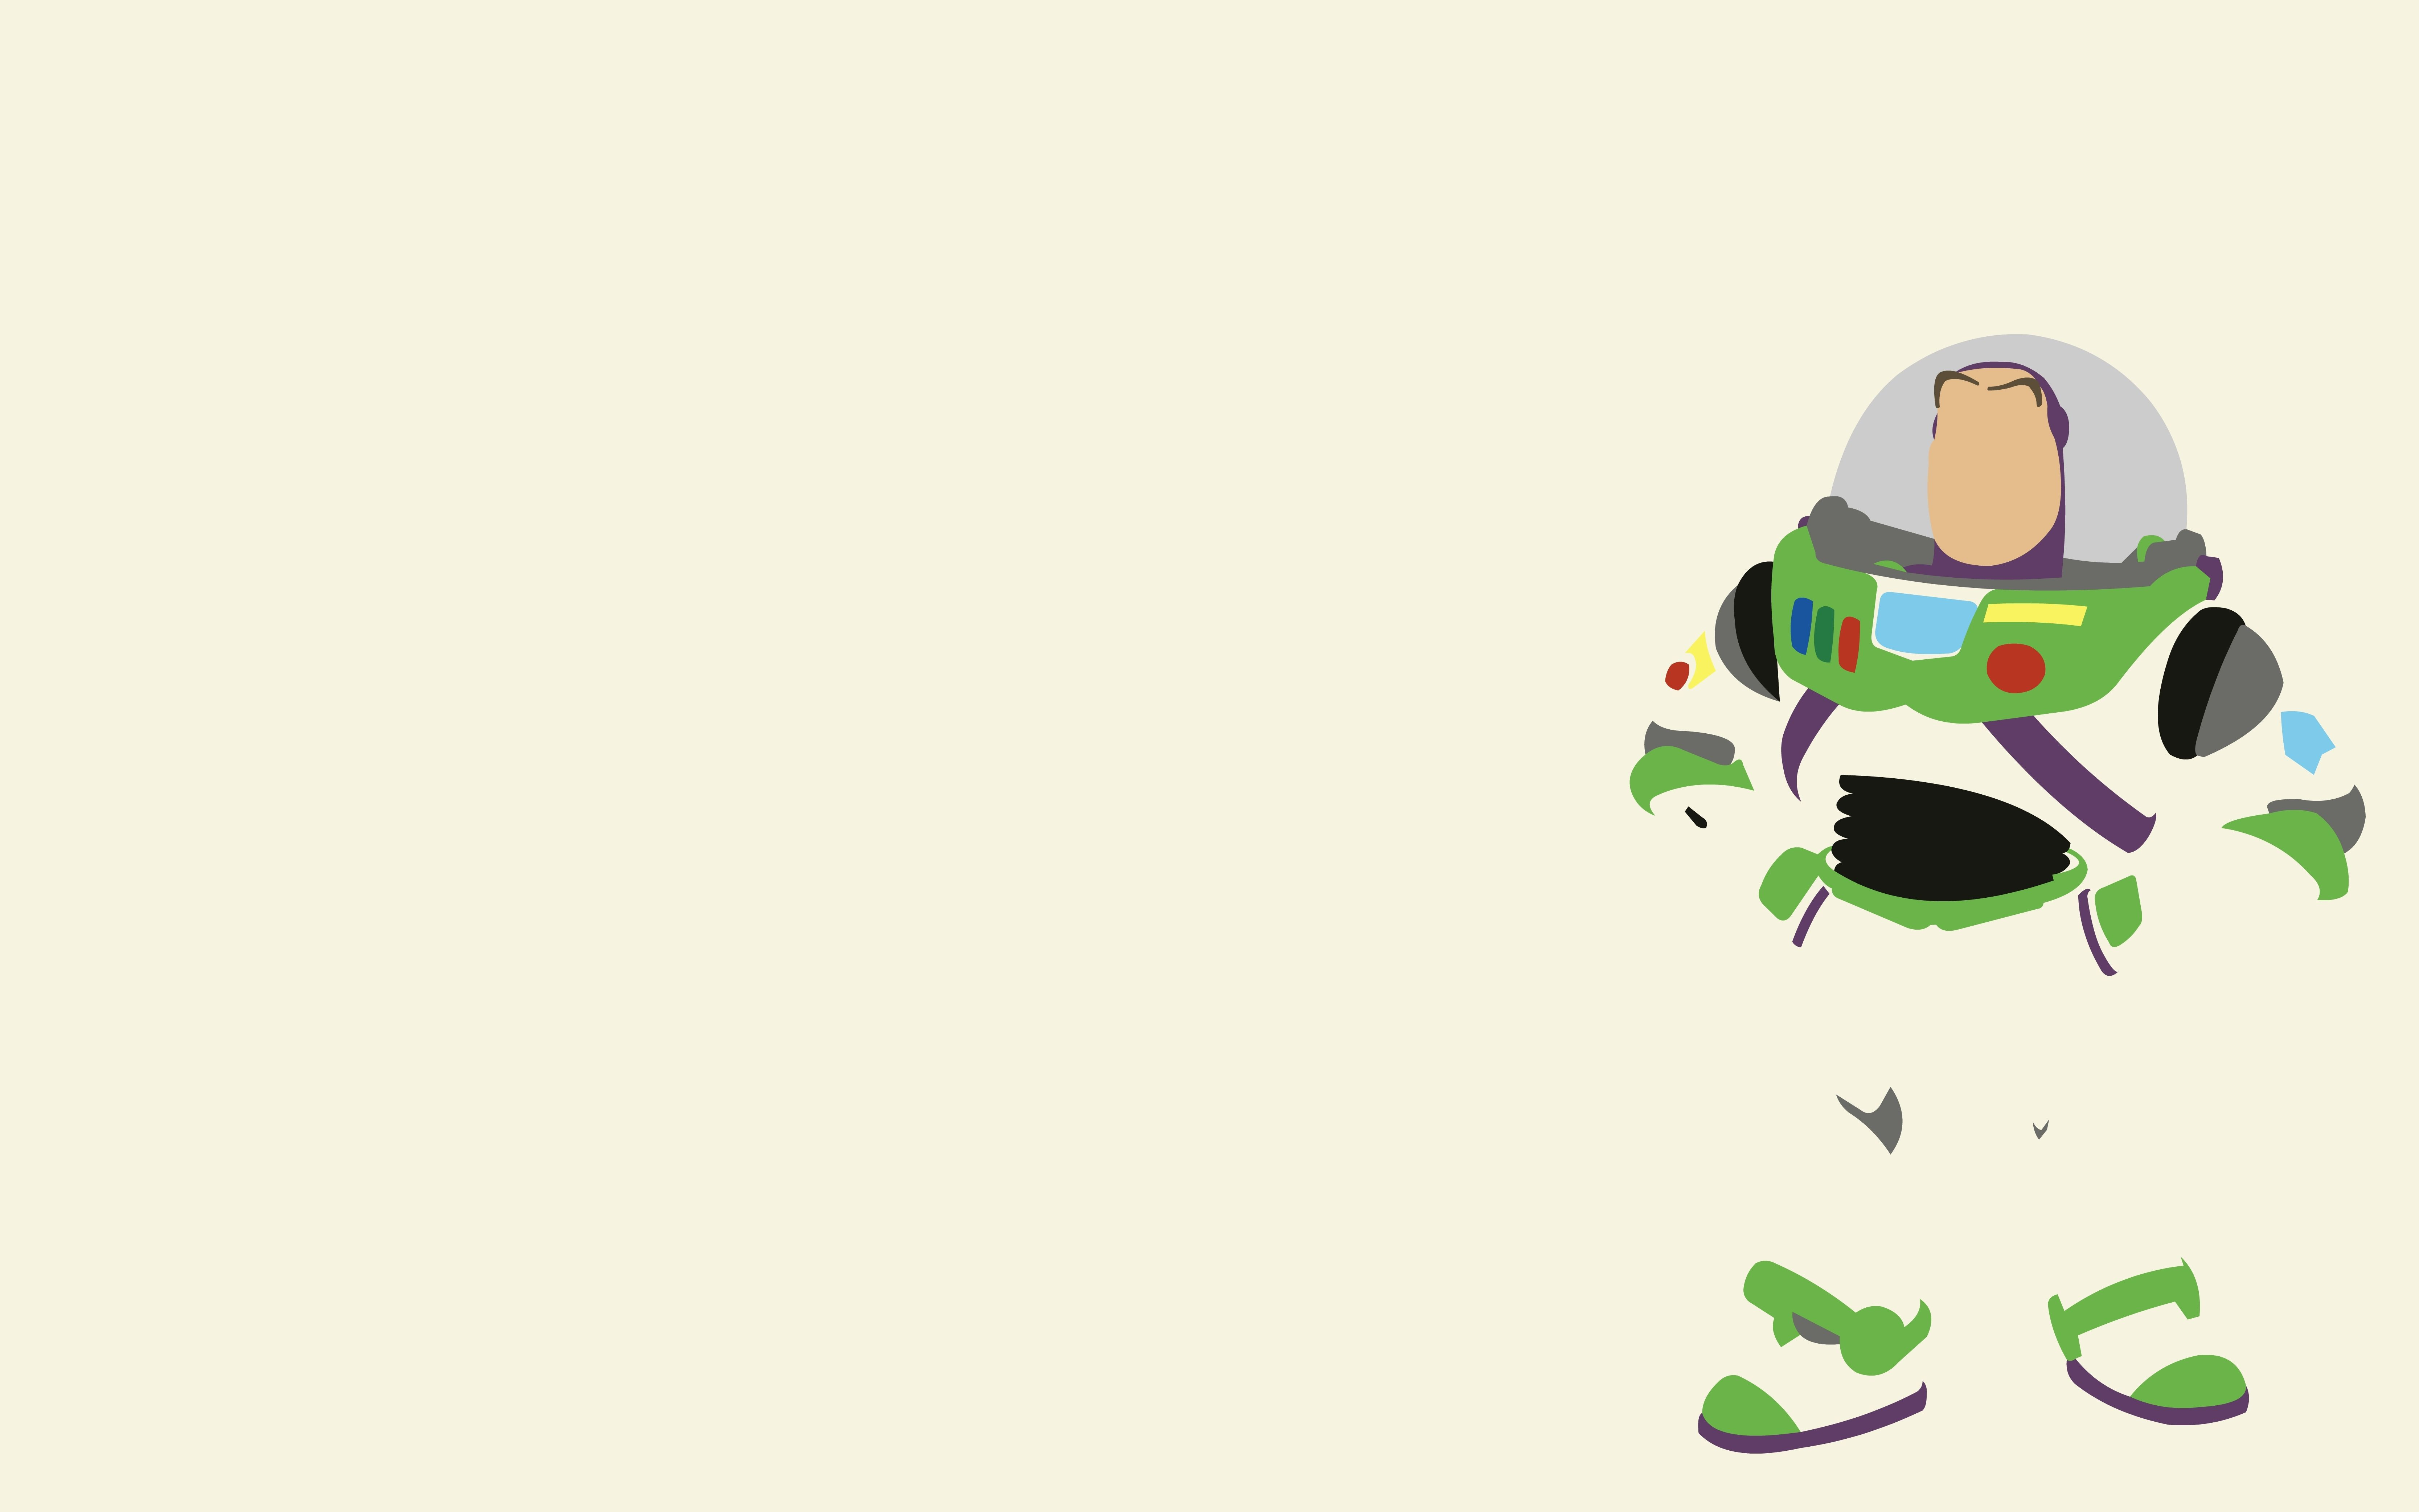 29 Buzz Lightyear Hd Wallpapers Backgrounds Wallpaper Abyss Toy Story Pictures Disney Background Desktop Wallpaper Art